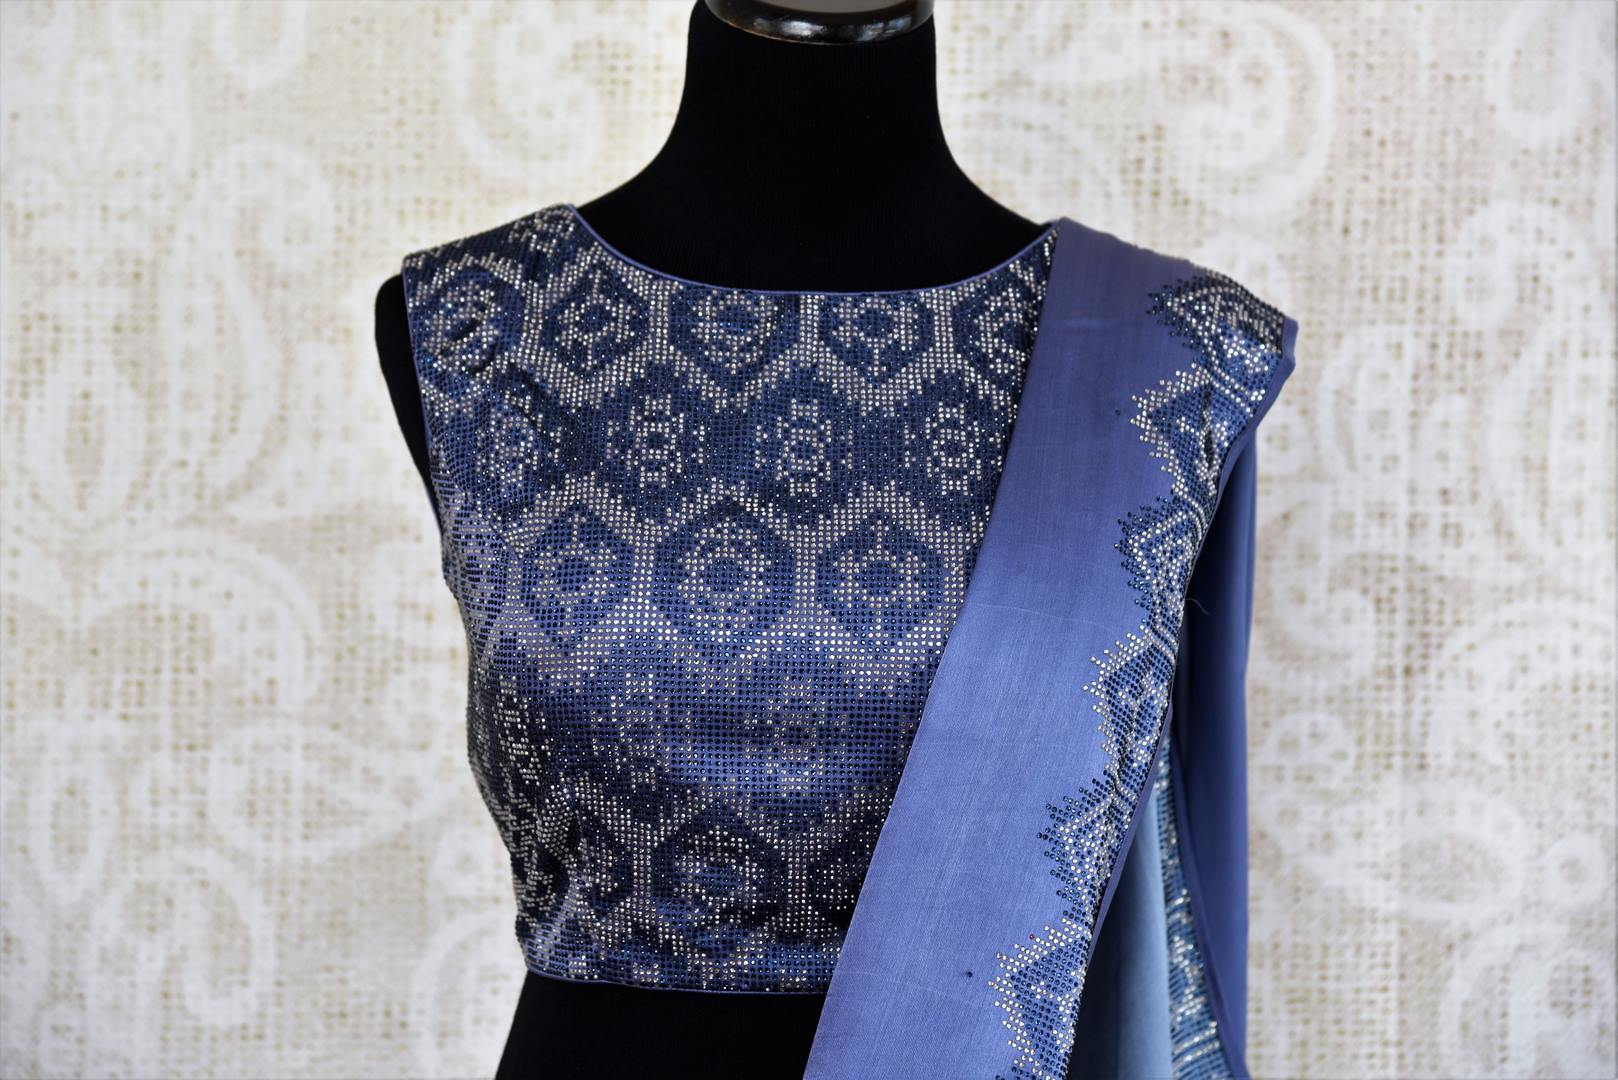 Buy elegant blue crepe silk designer sari online in USA with Swarovski stonework. The saree comes with a designer saree blouse perfect for a dazzling party look. Spoil yourself with an exquisite collection of Indian designer sarees in USA available at Pure Elegance Indian clothing store. -blouse pallu